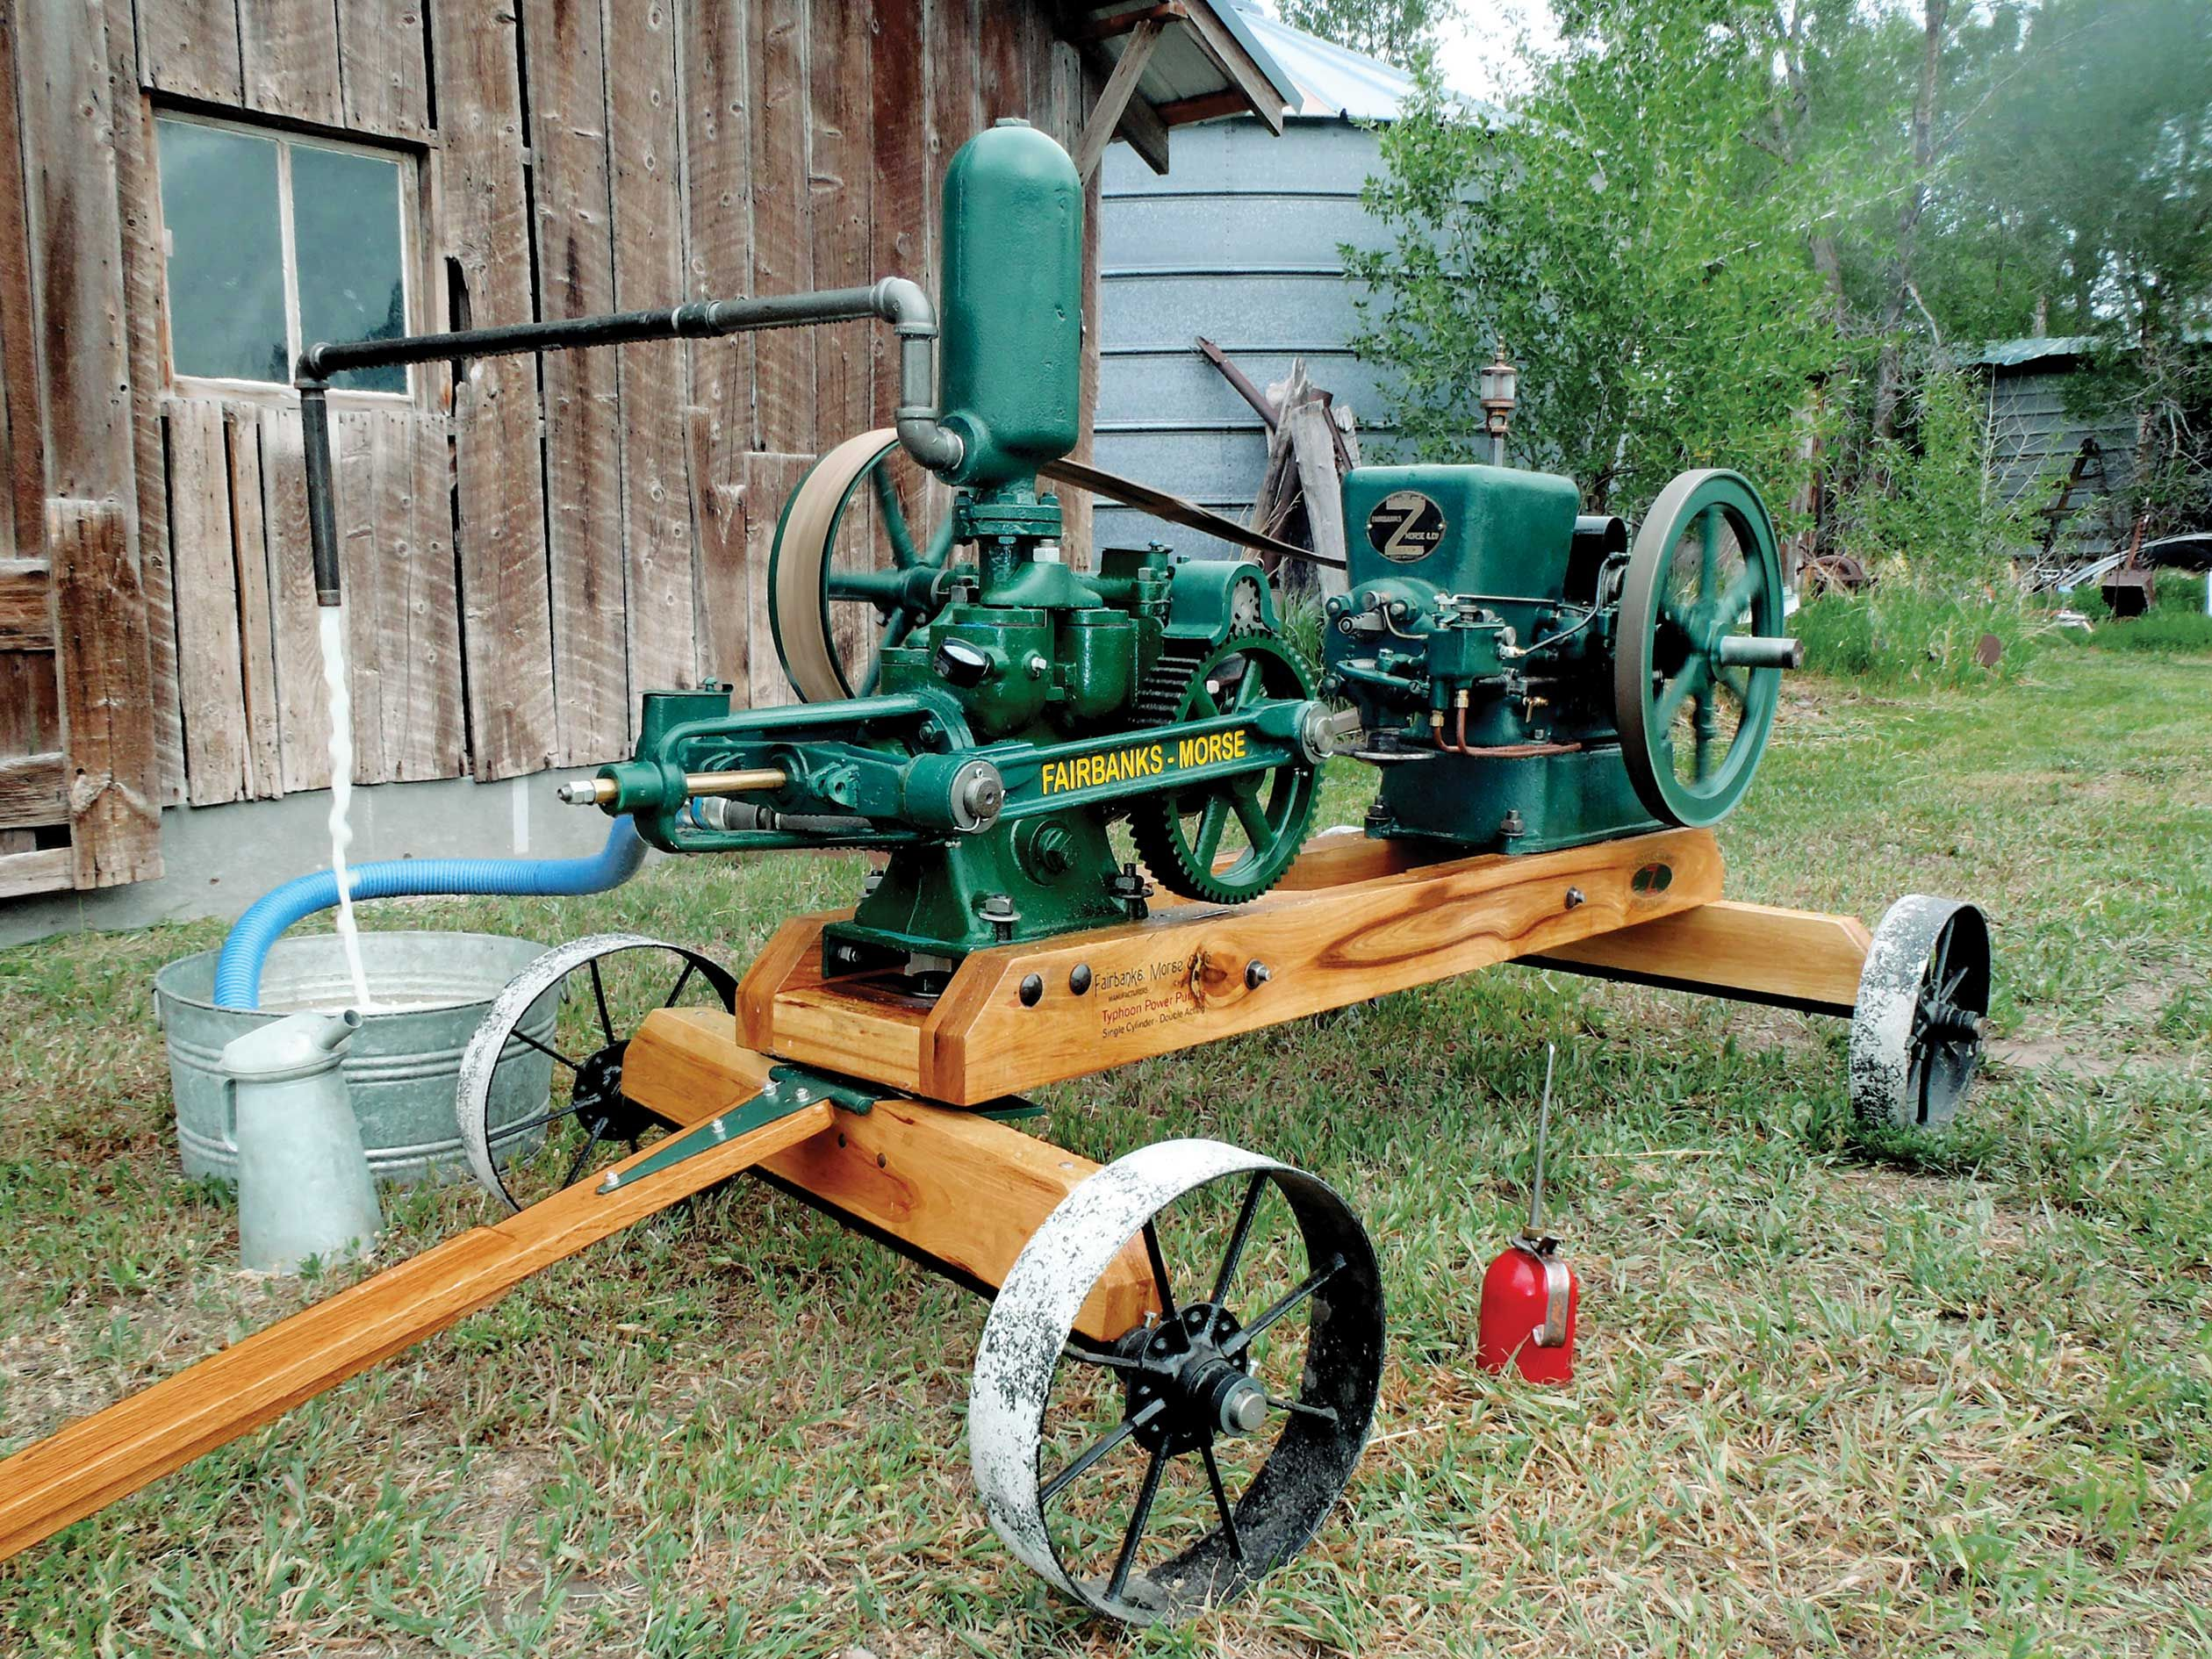 FairbanksMorse Z Farm Team Resurrection Restoration